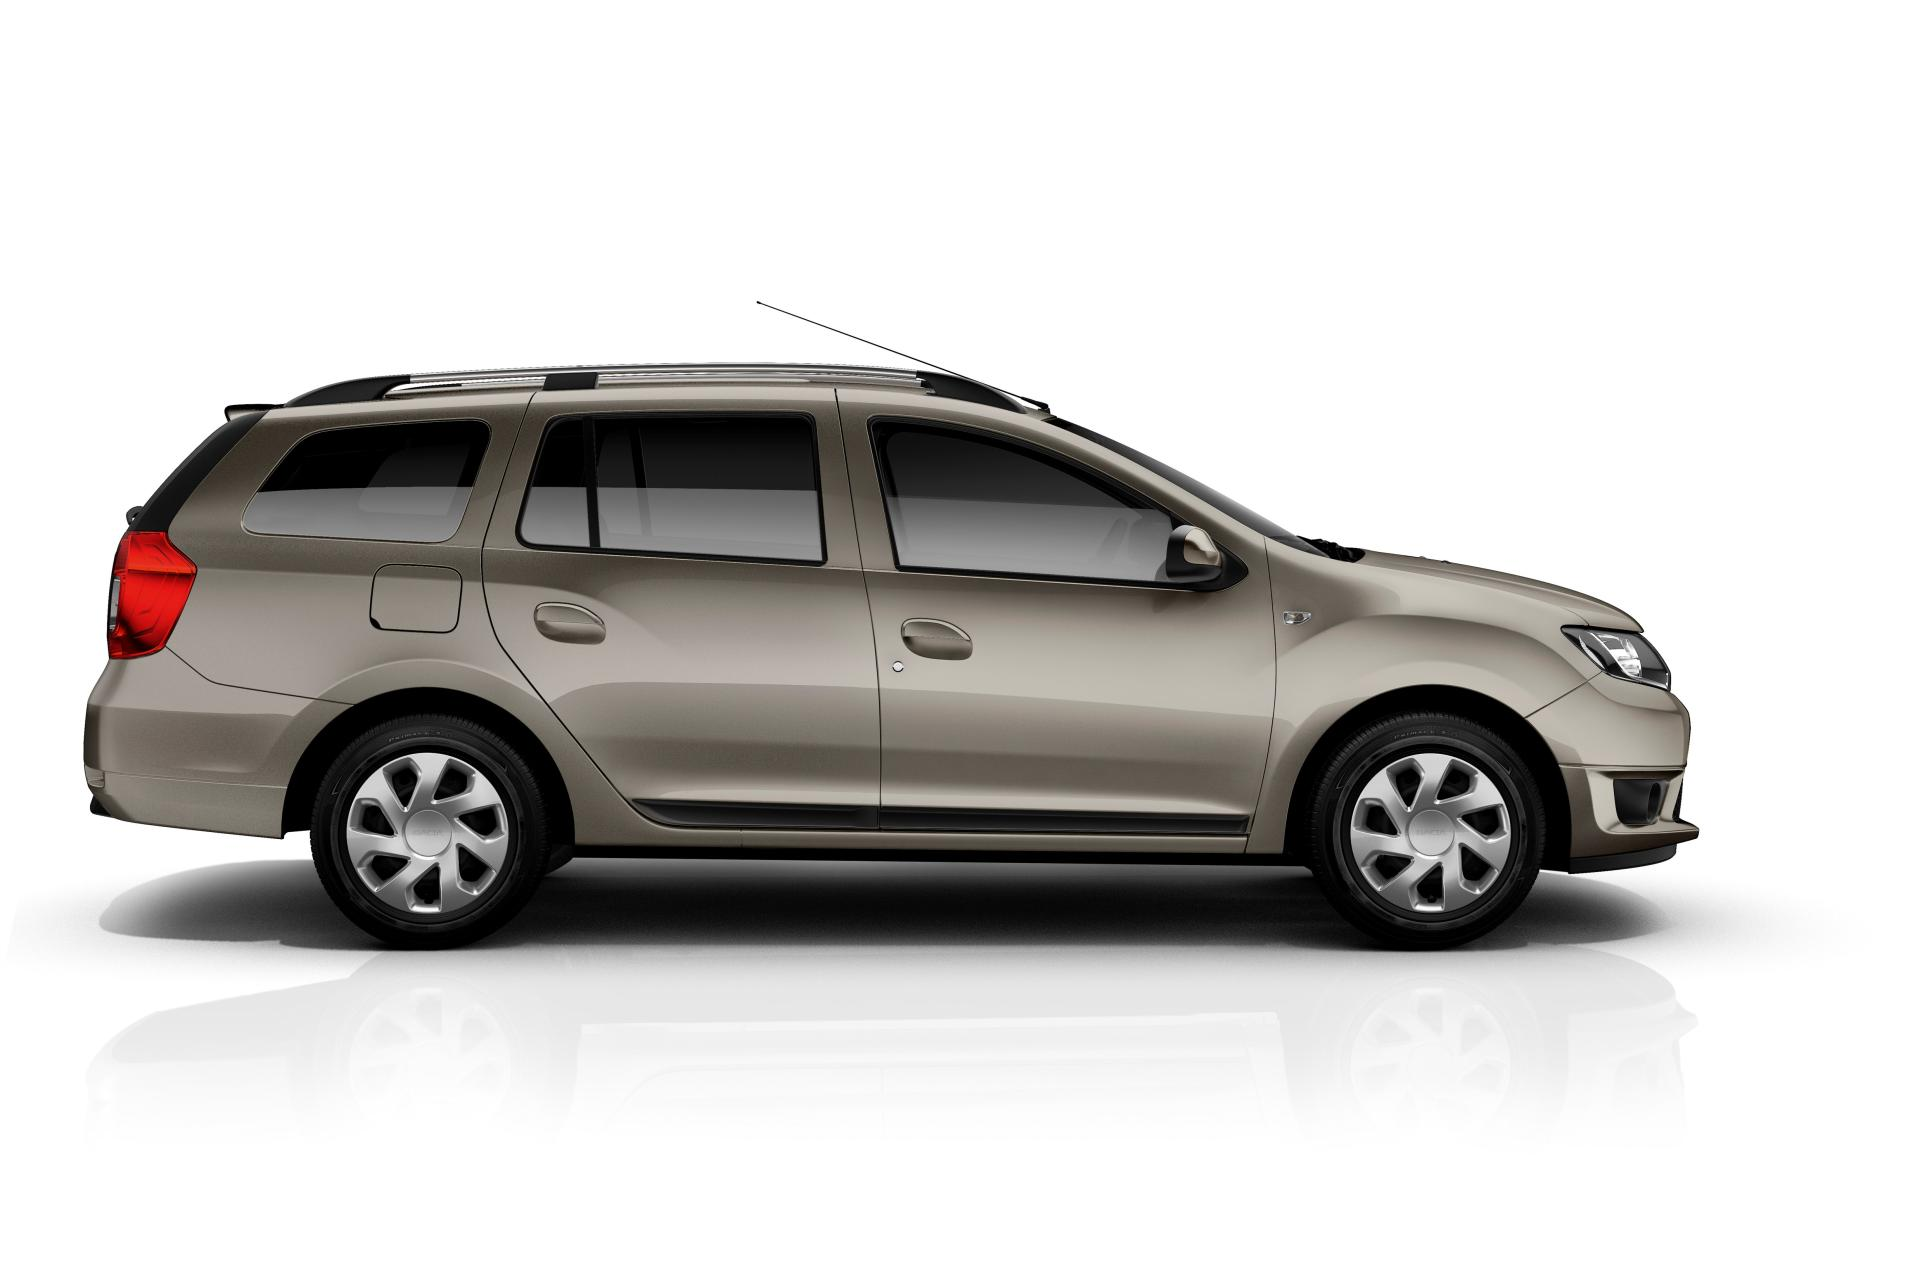 2014 dacia logan mcv technical specifications and data. Black Bedroom Furniture Sets. Home Design Ideas